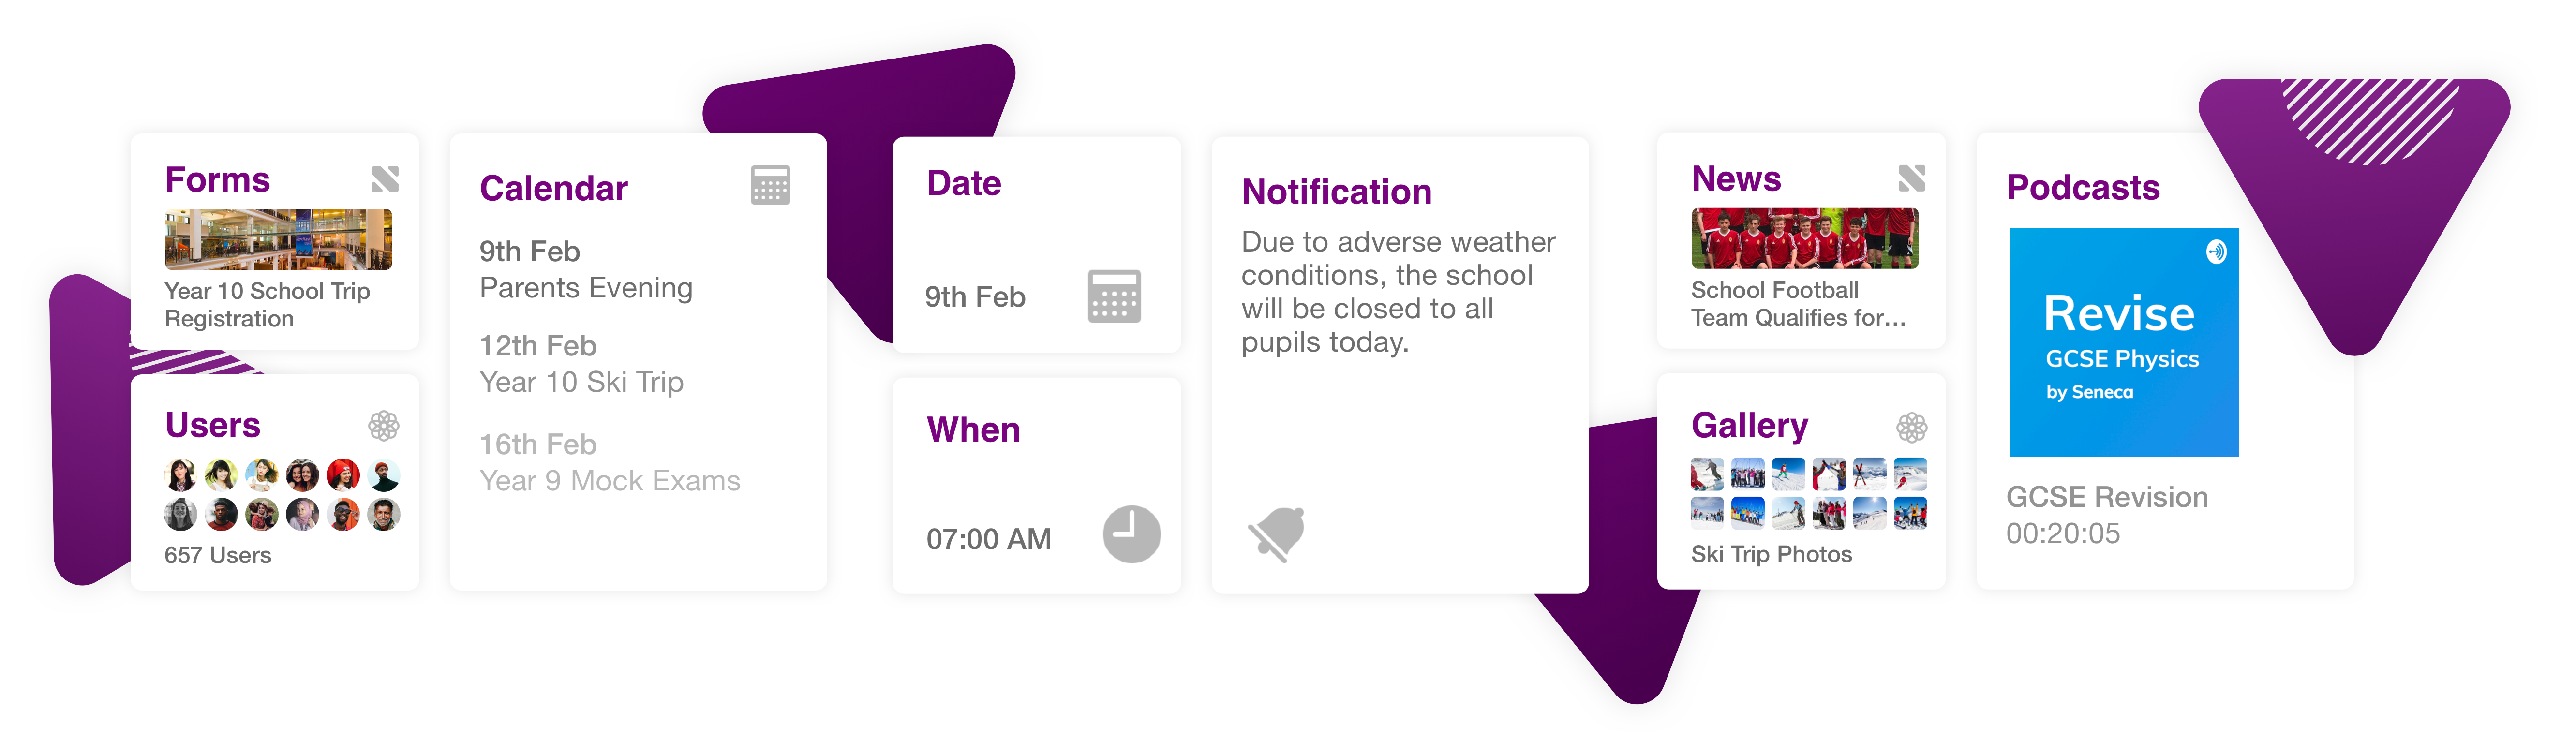 Share calendar events, messages and school news with an app for school.